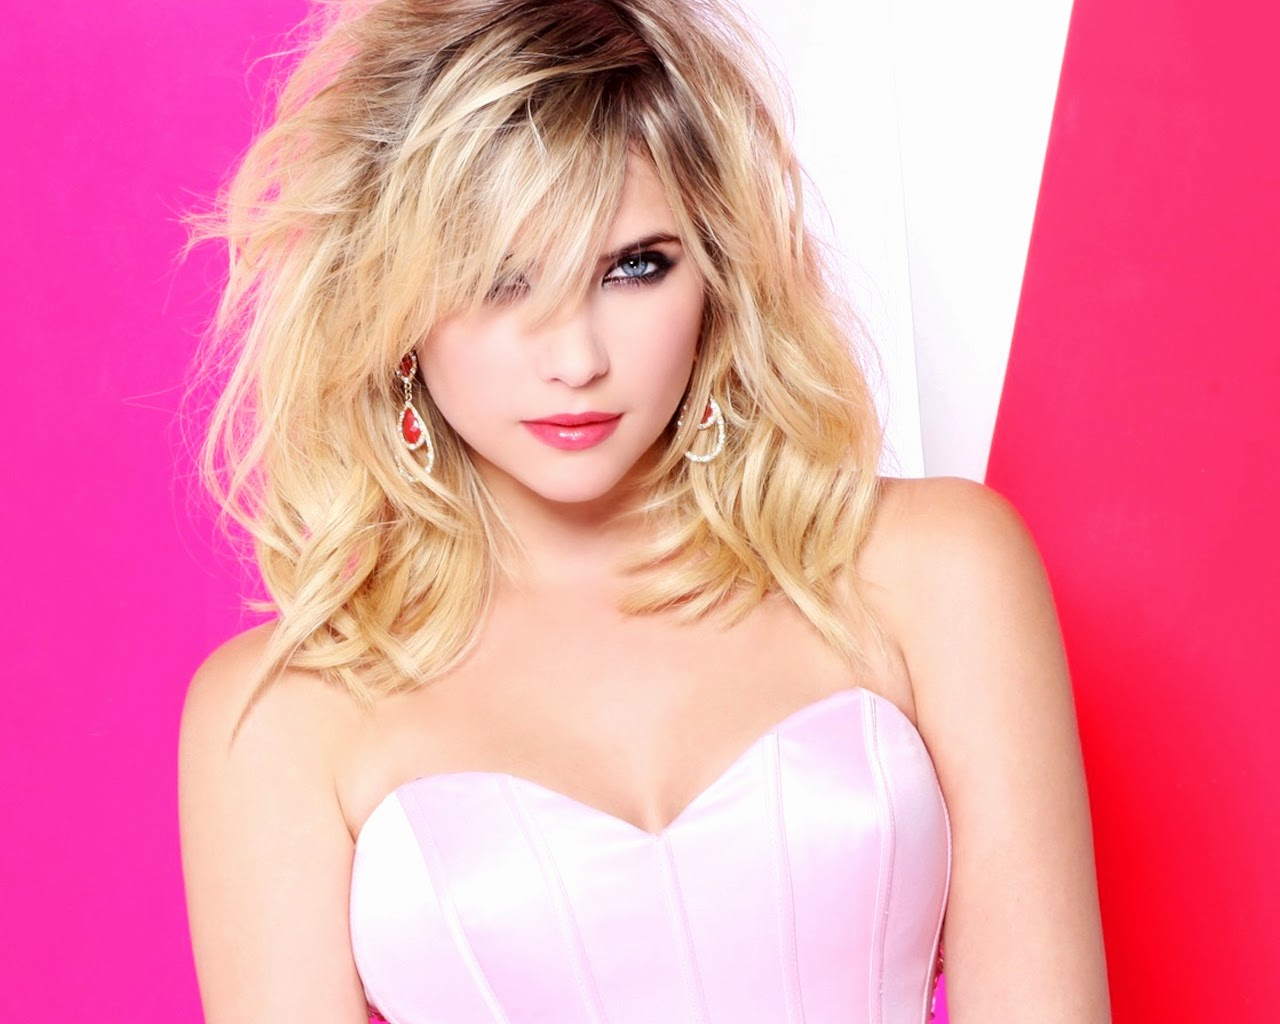 all star hd wallpapers download: ashley benson hd wallpapers